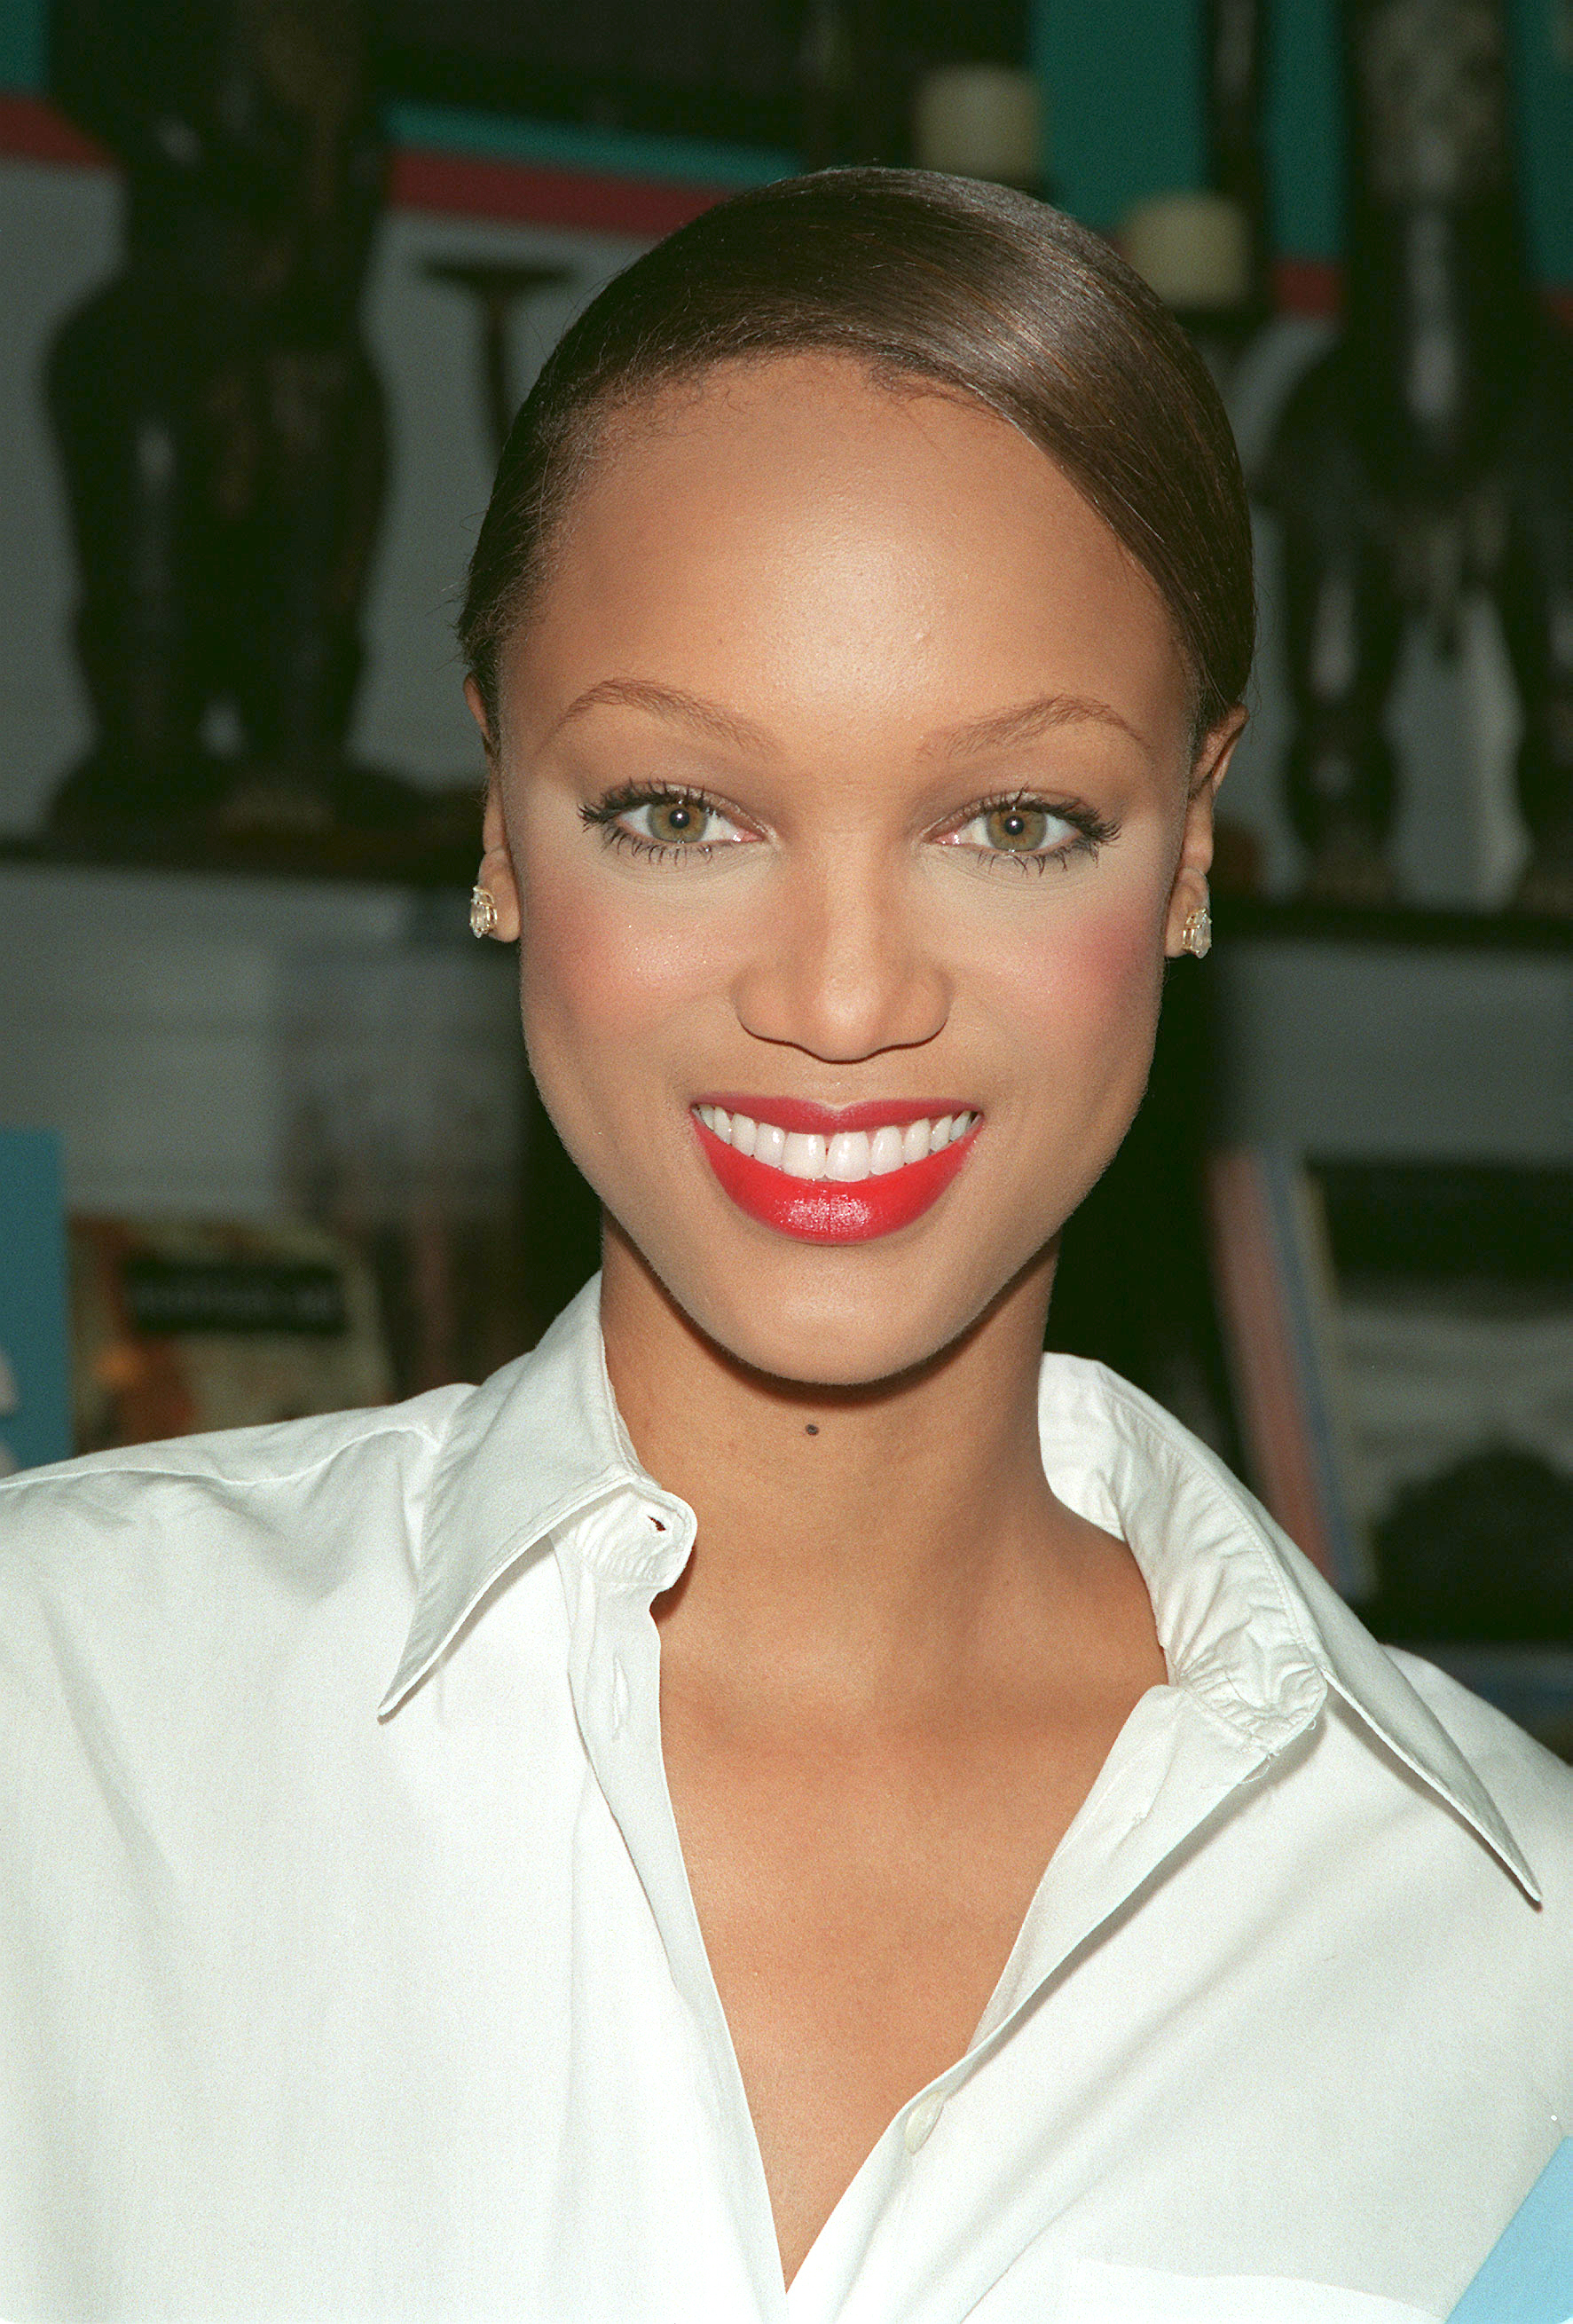 TYRA BANKS PROMOTES HER BOOK IN LOS ANGELES